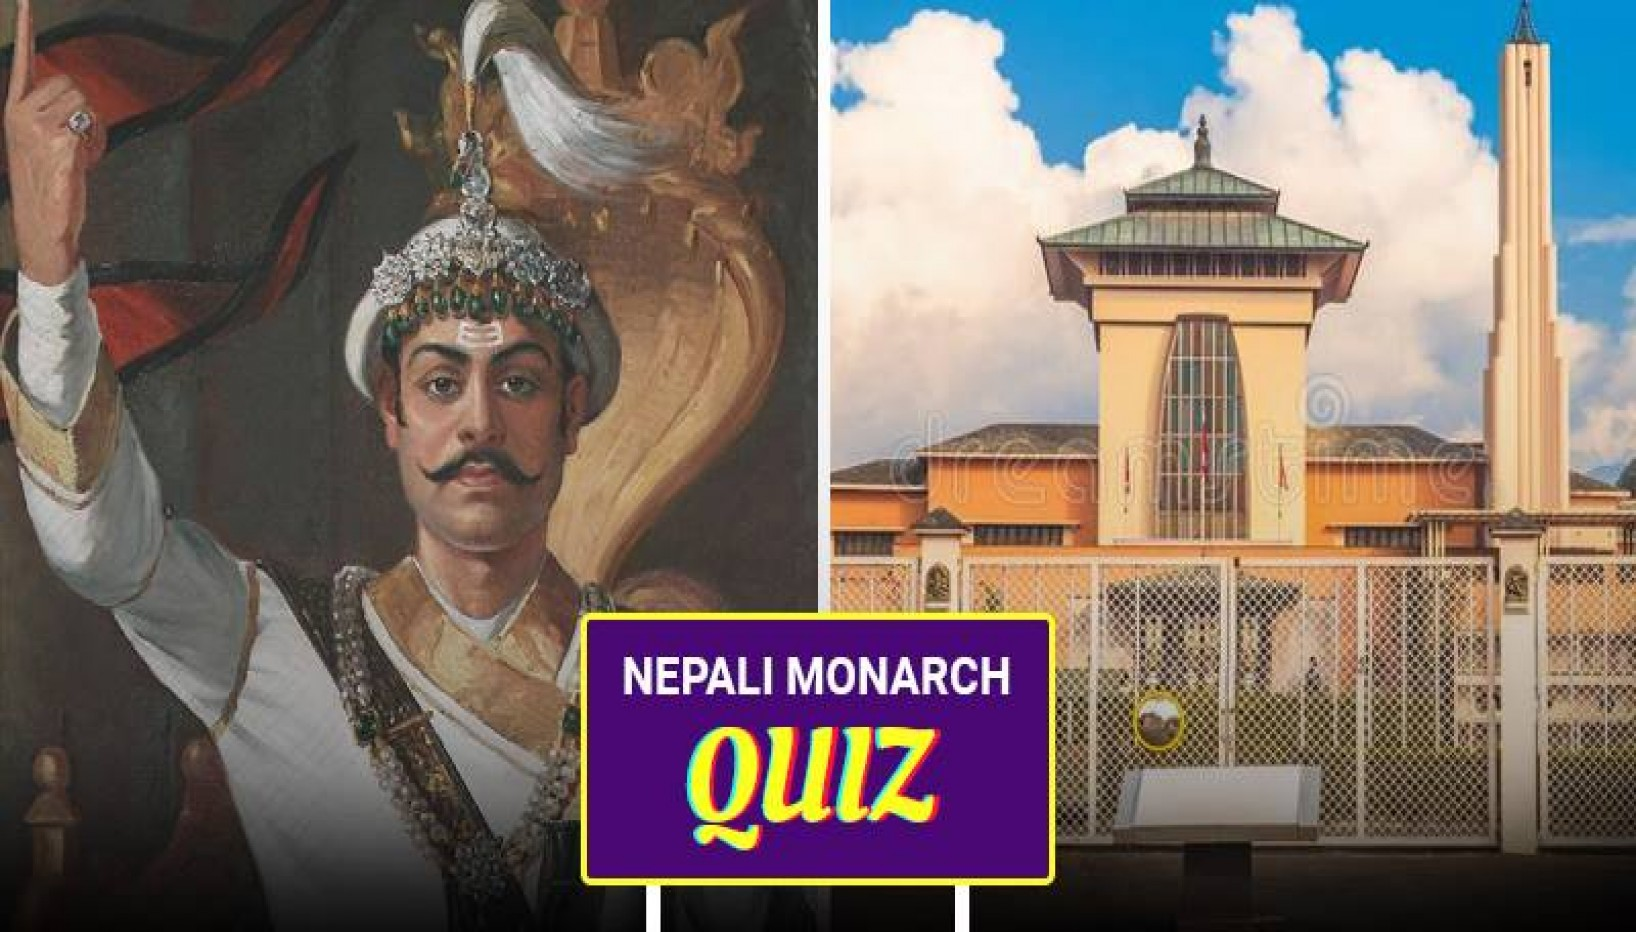 QUIZ: Test Your Royal Knowledge By Answering These 10 Questions About The Shah Monarchs